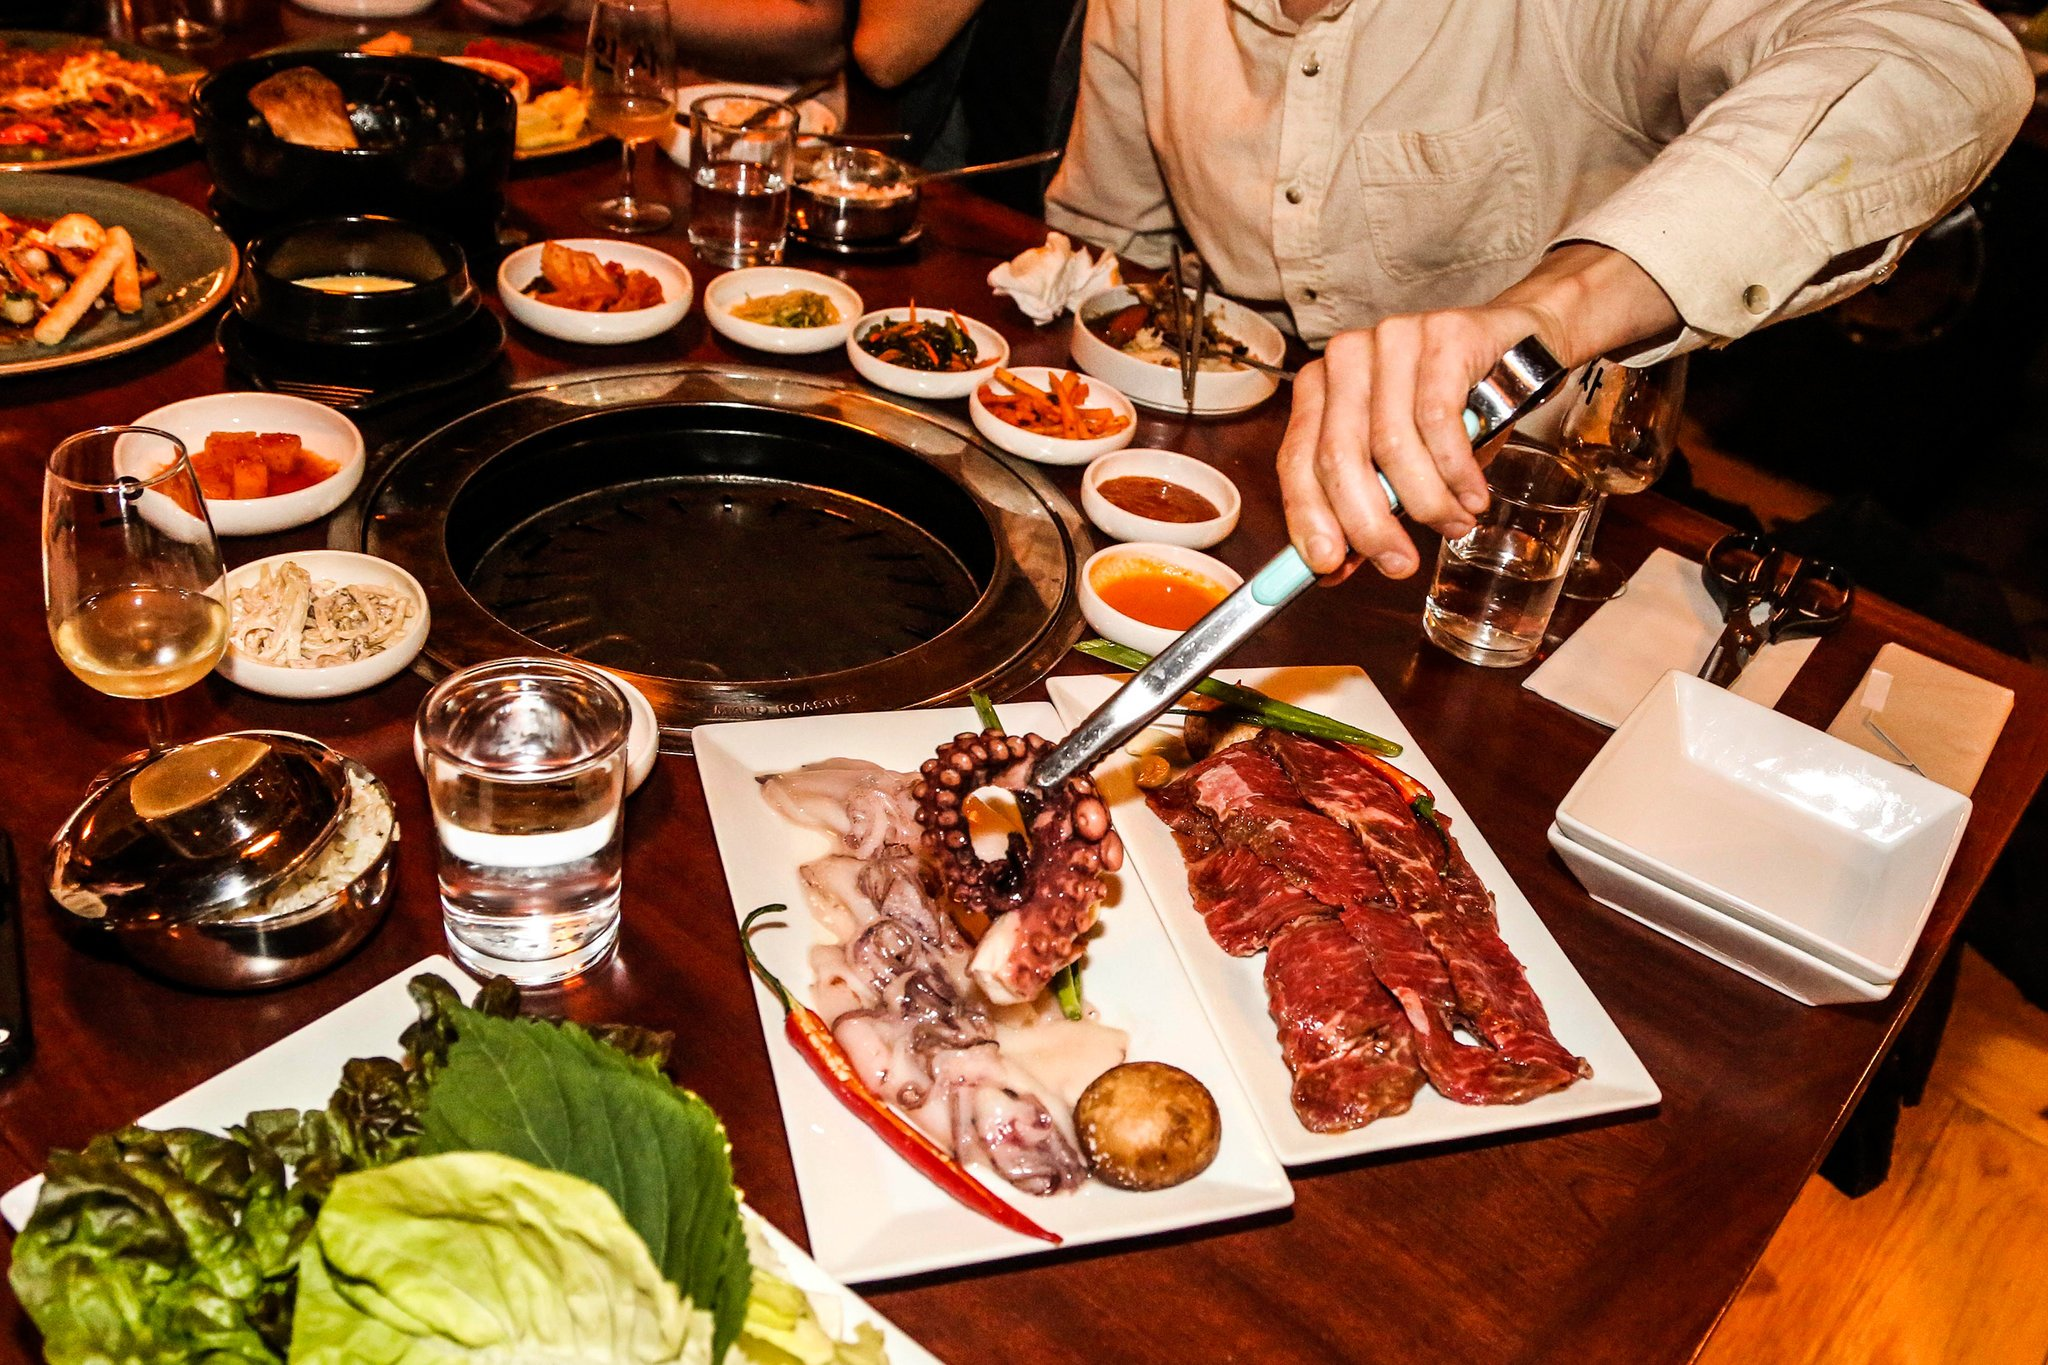 Korean Restaurant Where You Cook Your Own Food